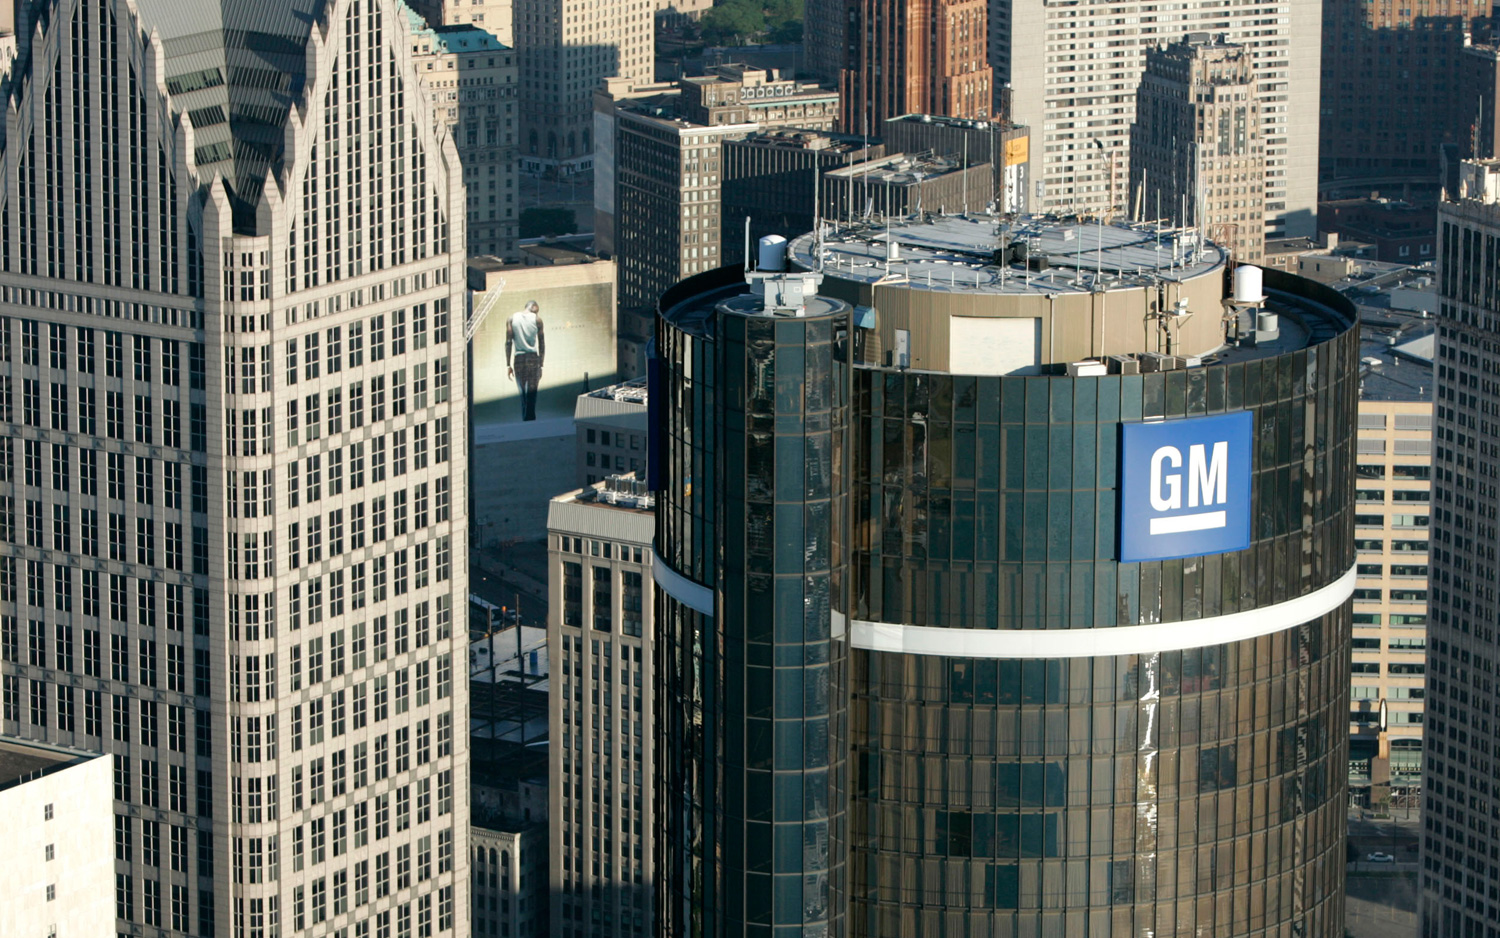 The U.S. Bailout of GM Ends as Treasury Sells Remaining Stock